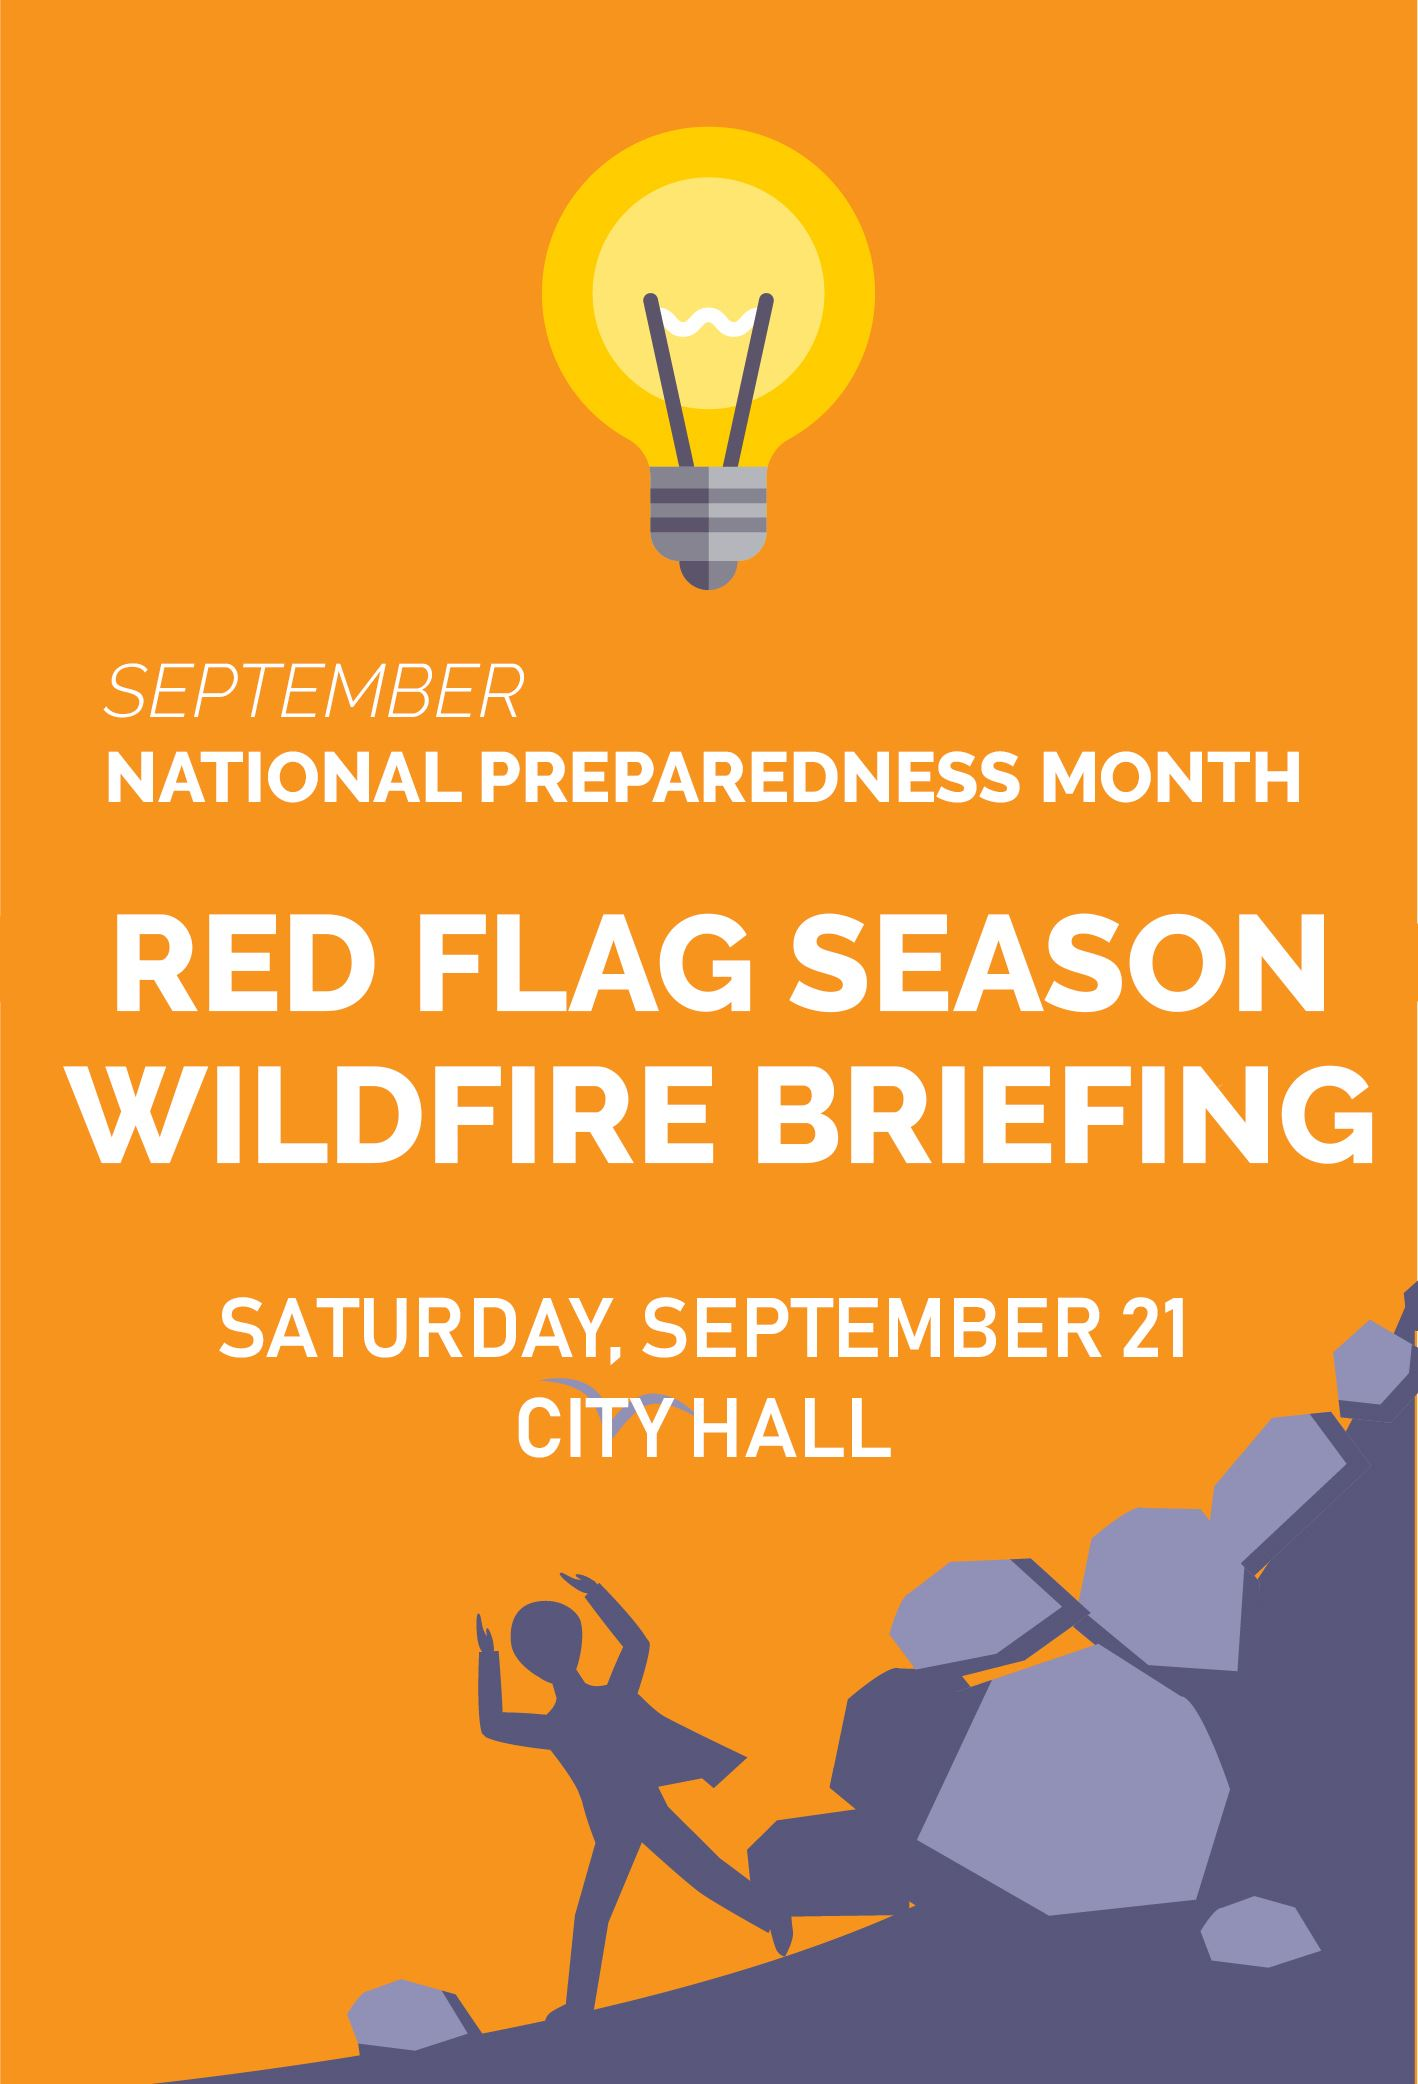 Preparedness Month Wildfire Briefing